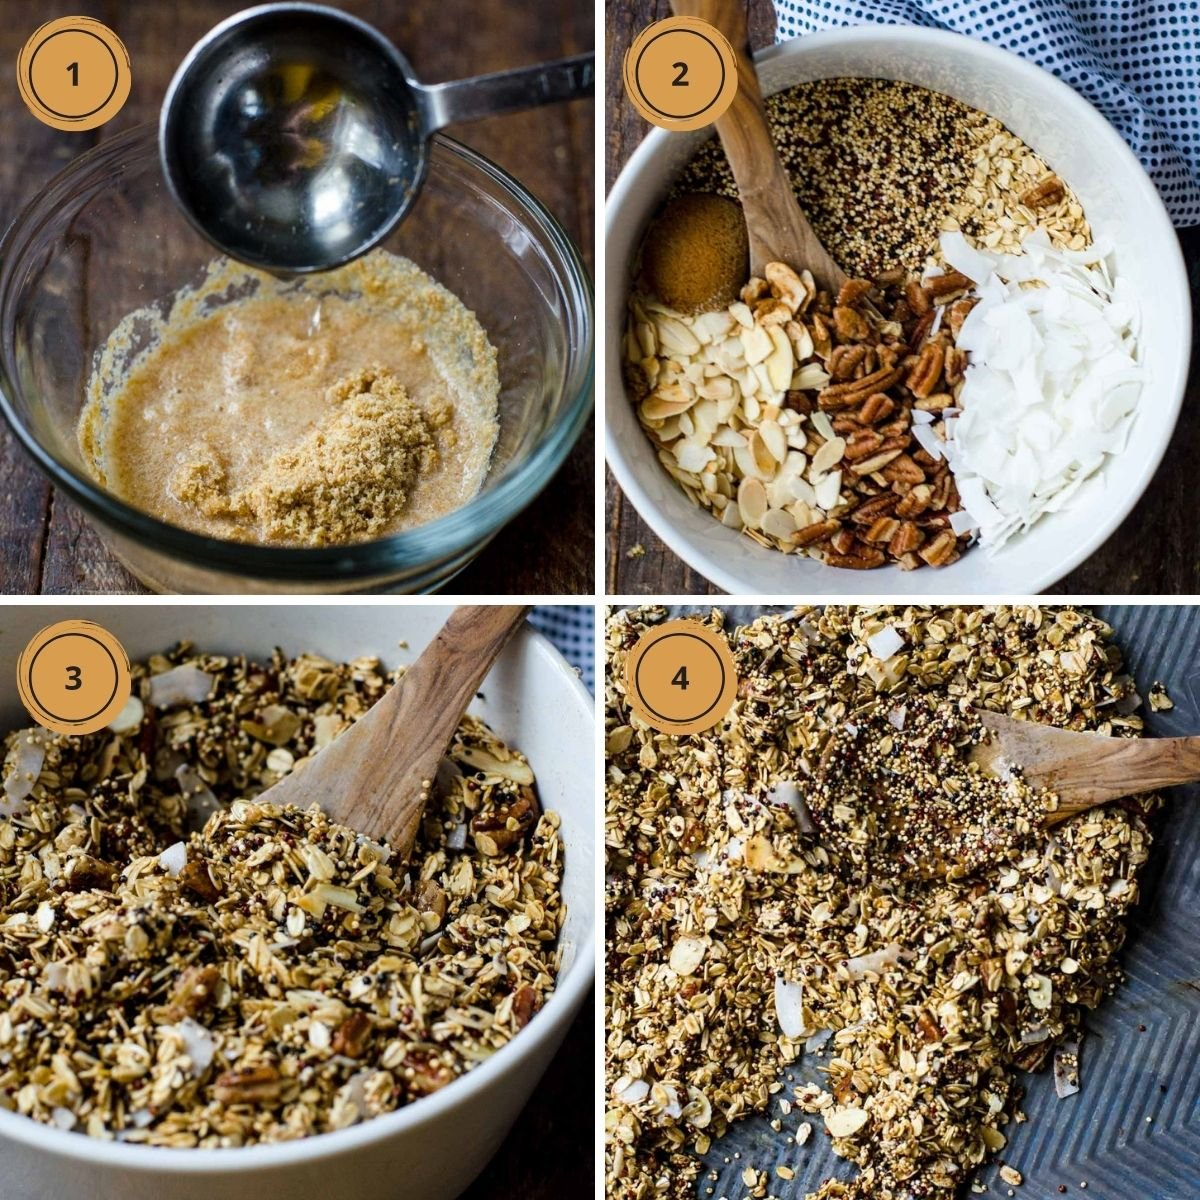 Four steps showing how to make high protein granola.